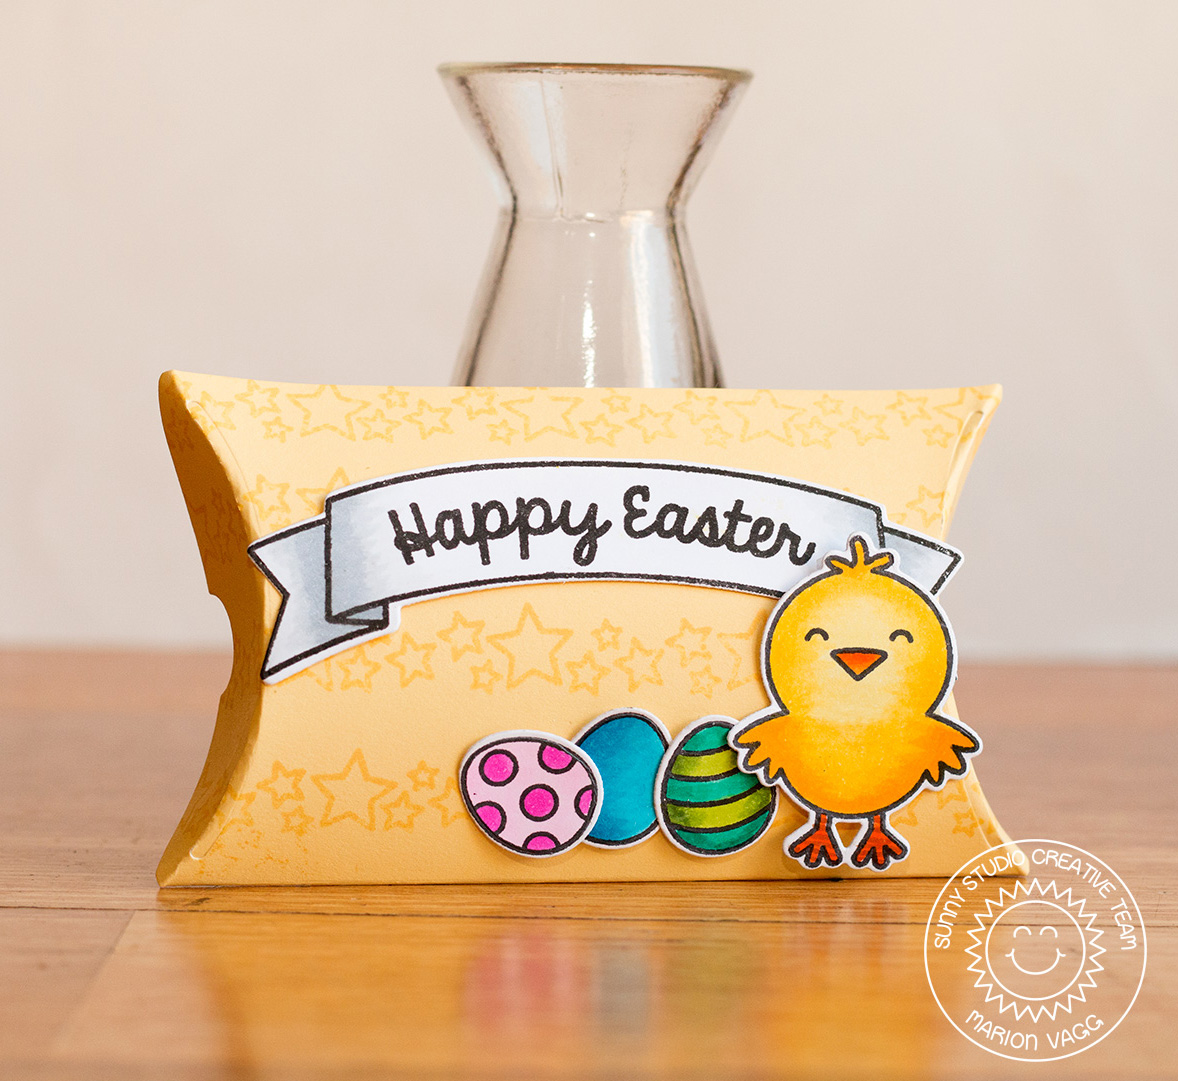 Happy Easter Pillow Box | Marion Vagg